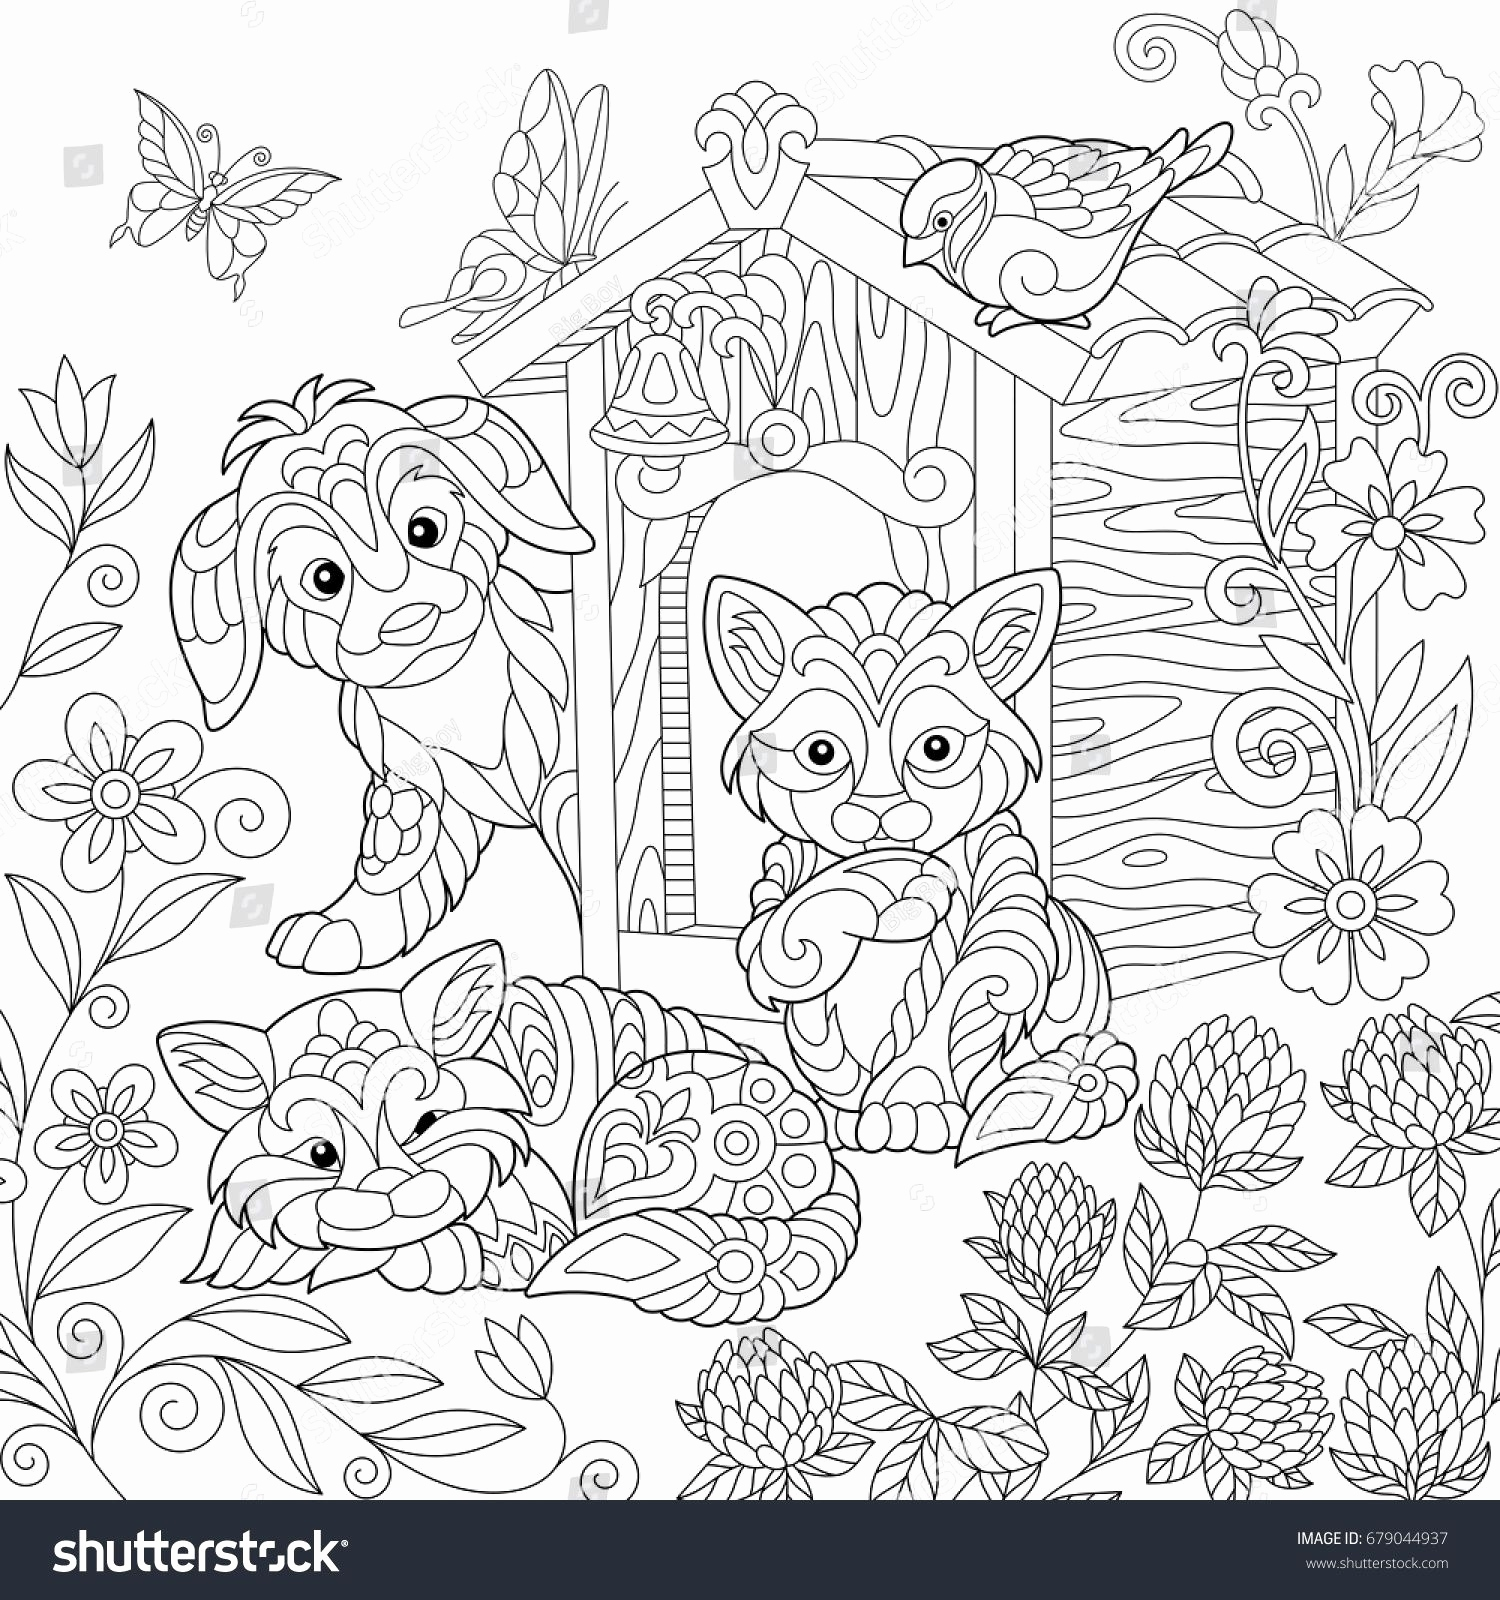 1500x1600 Full Page Printable Coloring Pages Elegant Best Od Dog Coloring